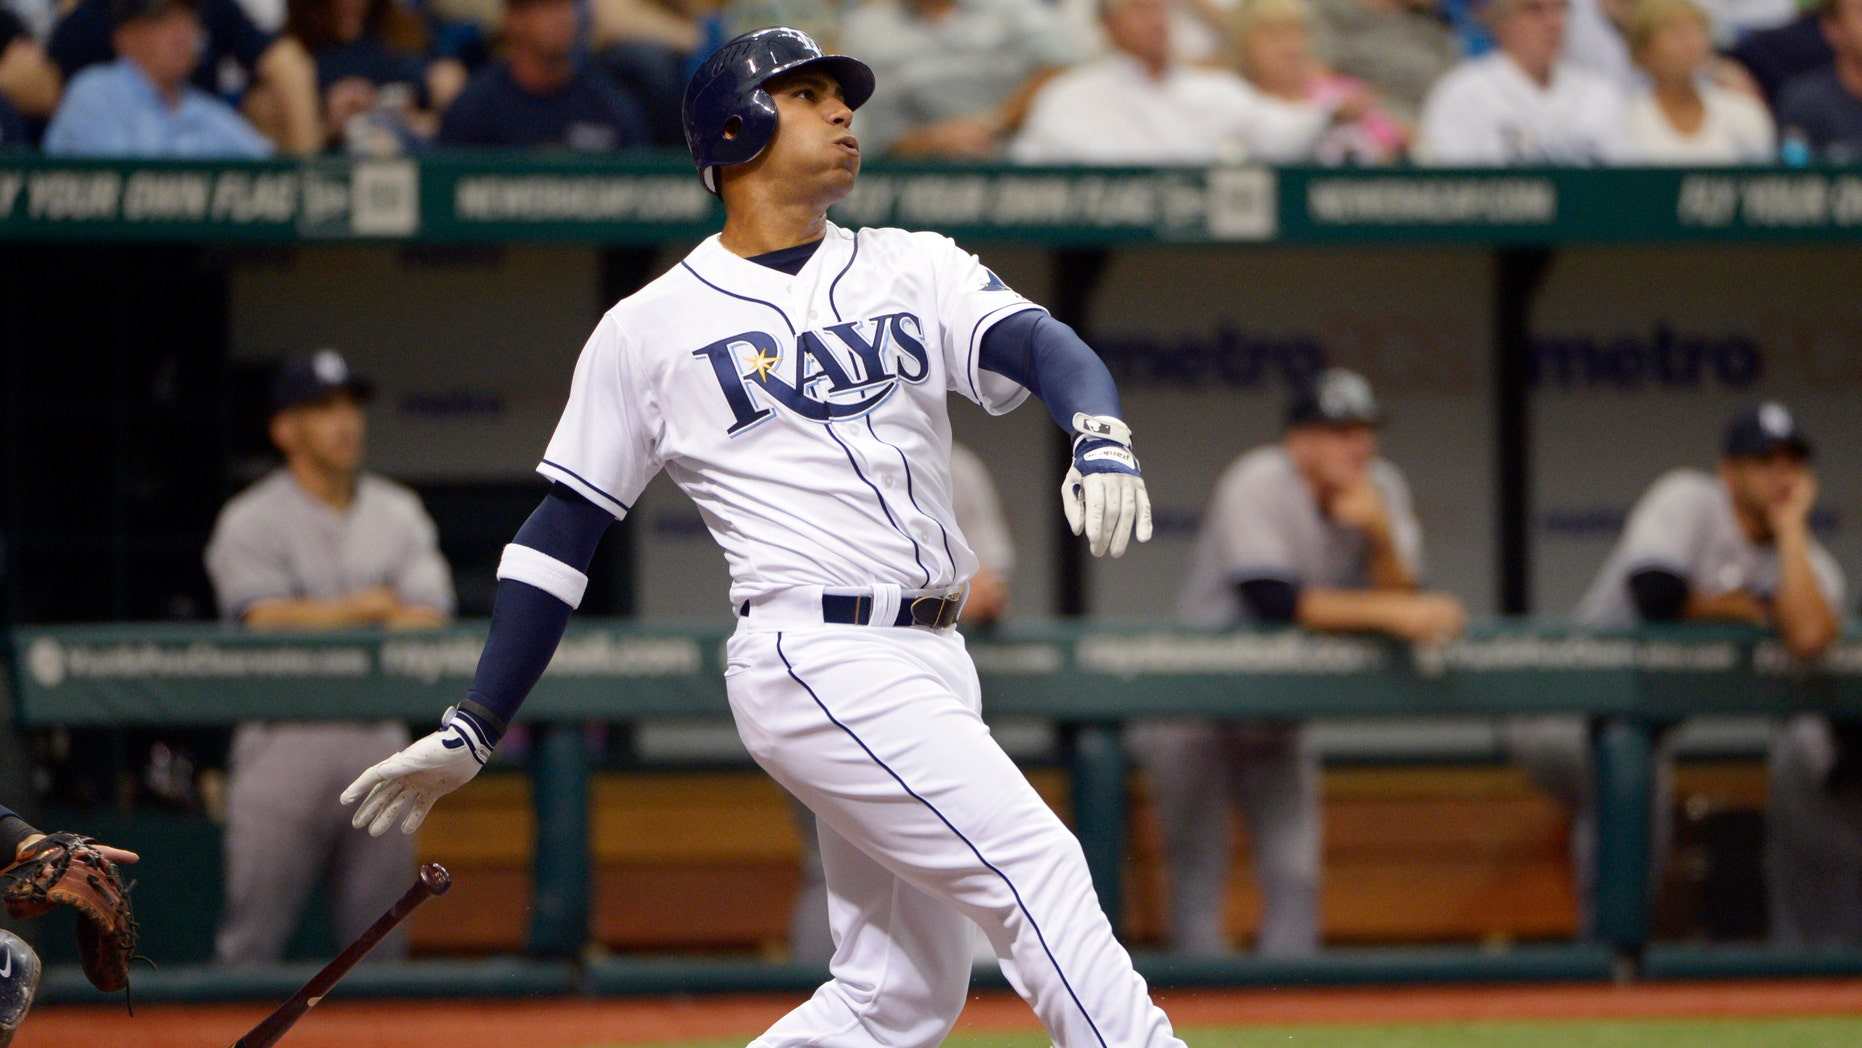 Tampa Bay Rays' Carlos Pena watches the flight of the ball after hitting a grand-slam home run during the first inning of a baseball game against the New York Yankees in St. Petersburg, Fla., Friday, April 6, 2012. (AP Photo/Phelan M. Ebenhack)